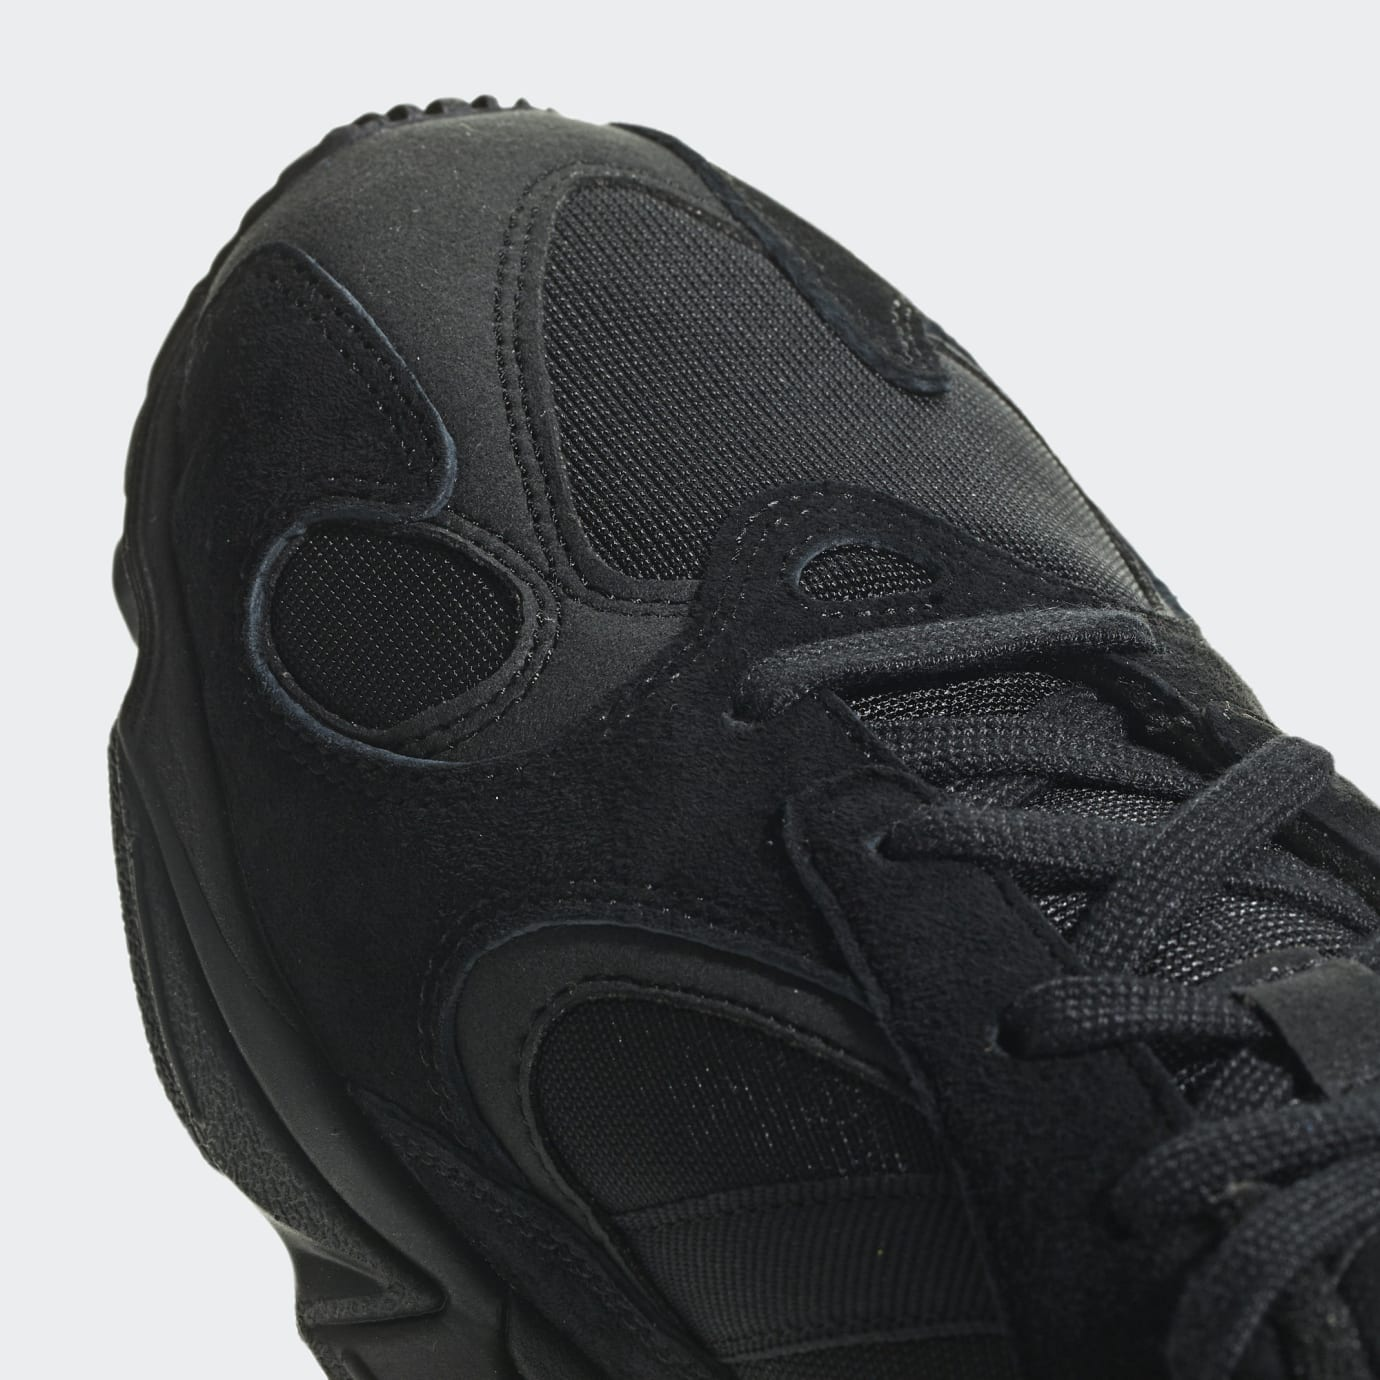 Adidas Yung-1 Triple Black Release Date G27026